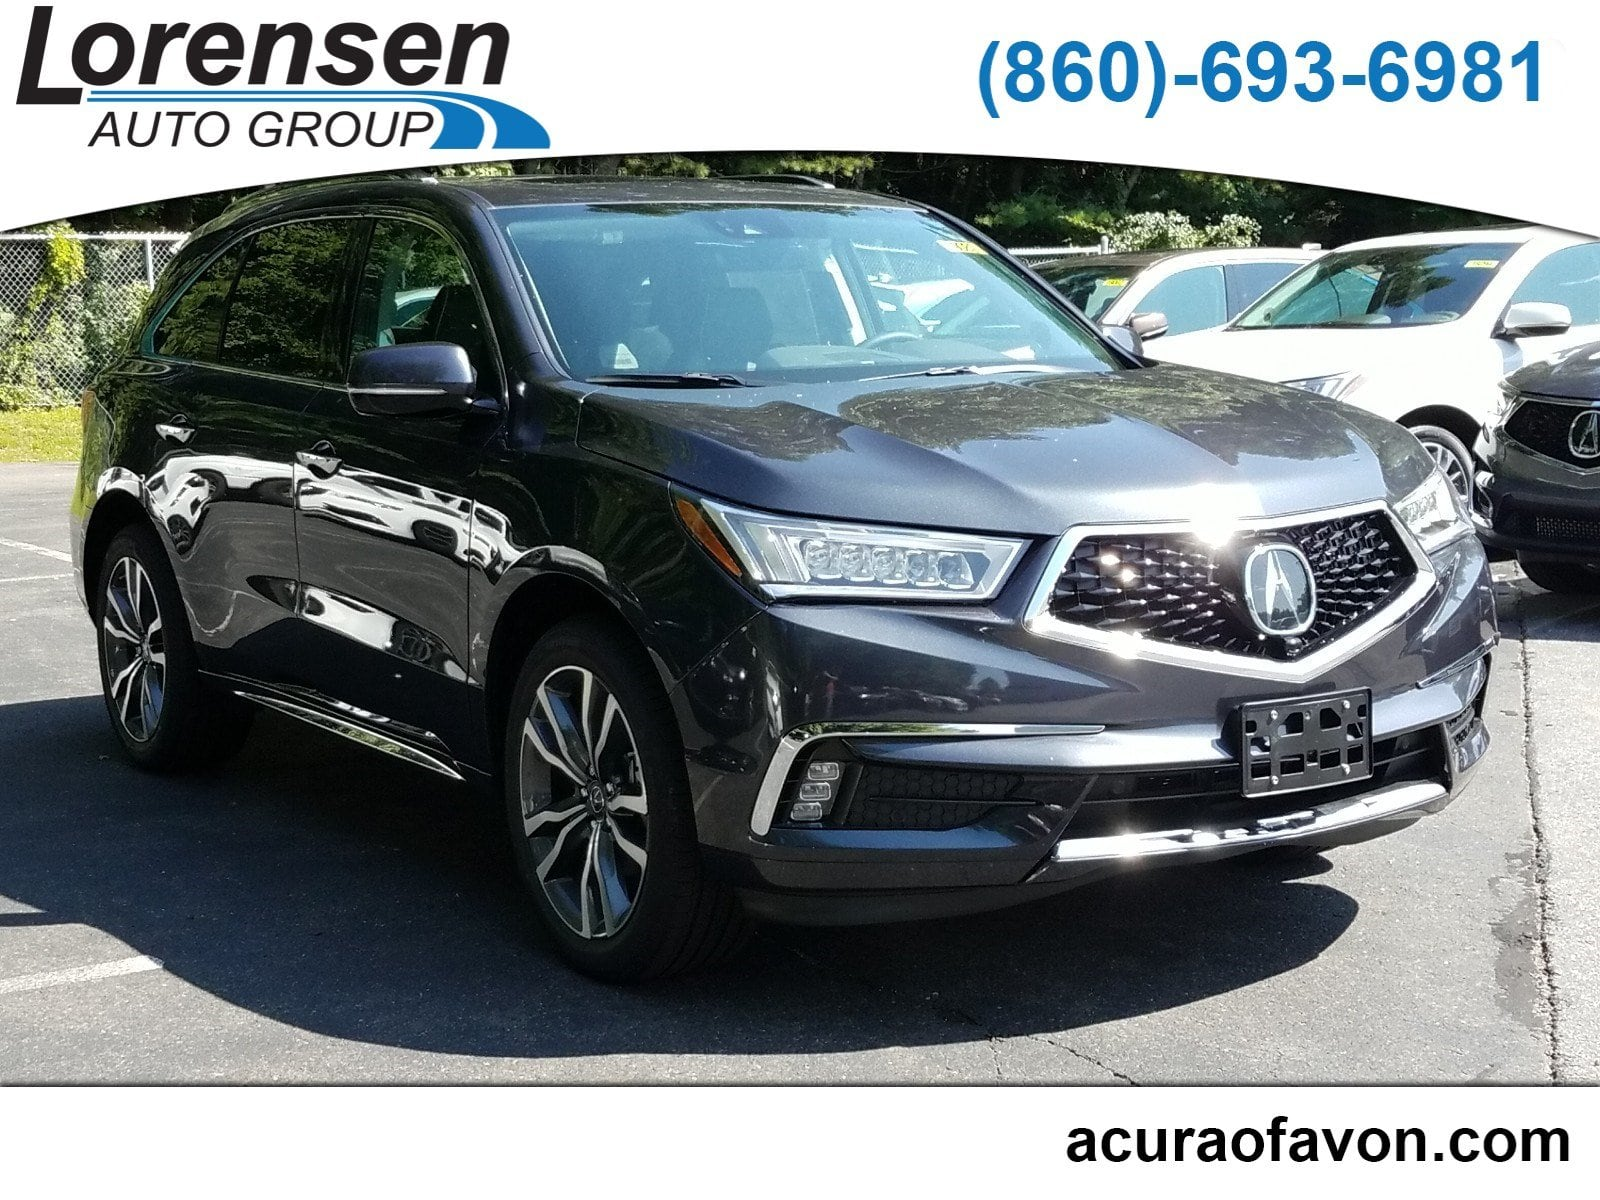 New 2019 Acura MDX AWD ADVANCE 7P ENTERTAINMENT SUV in Canton